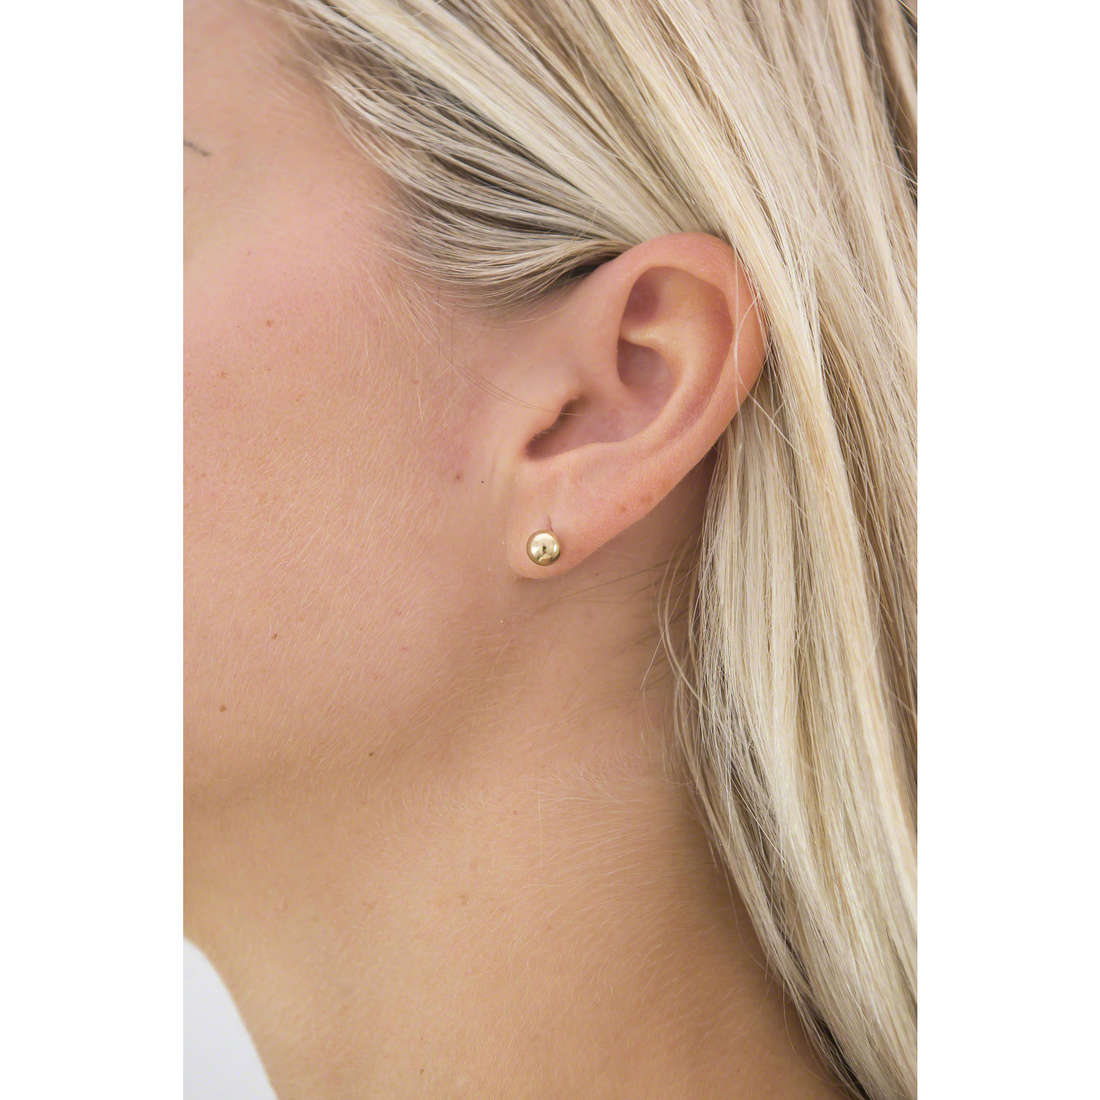 Marlù boucles d'oreille Riflessi femme 5OR0040R-8 indosso